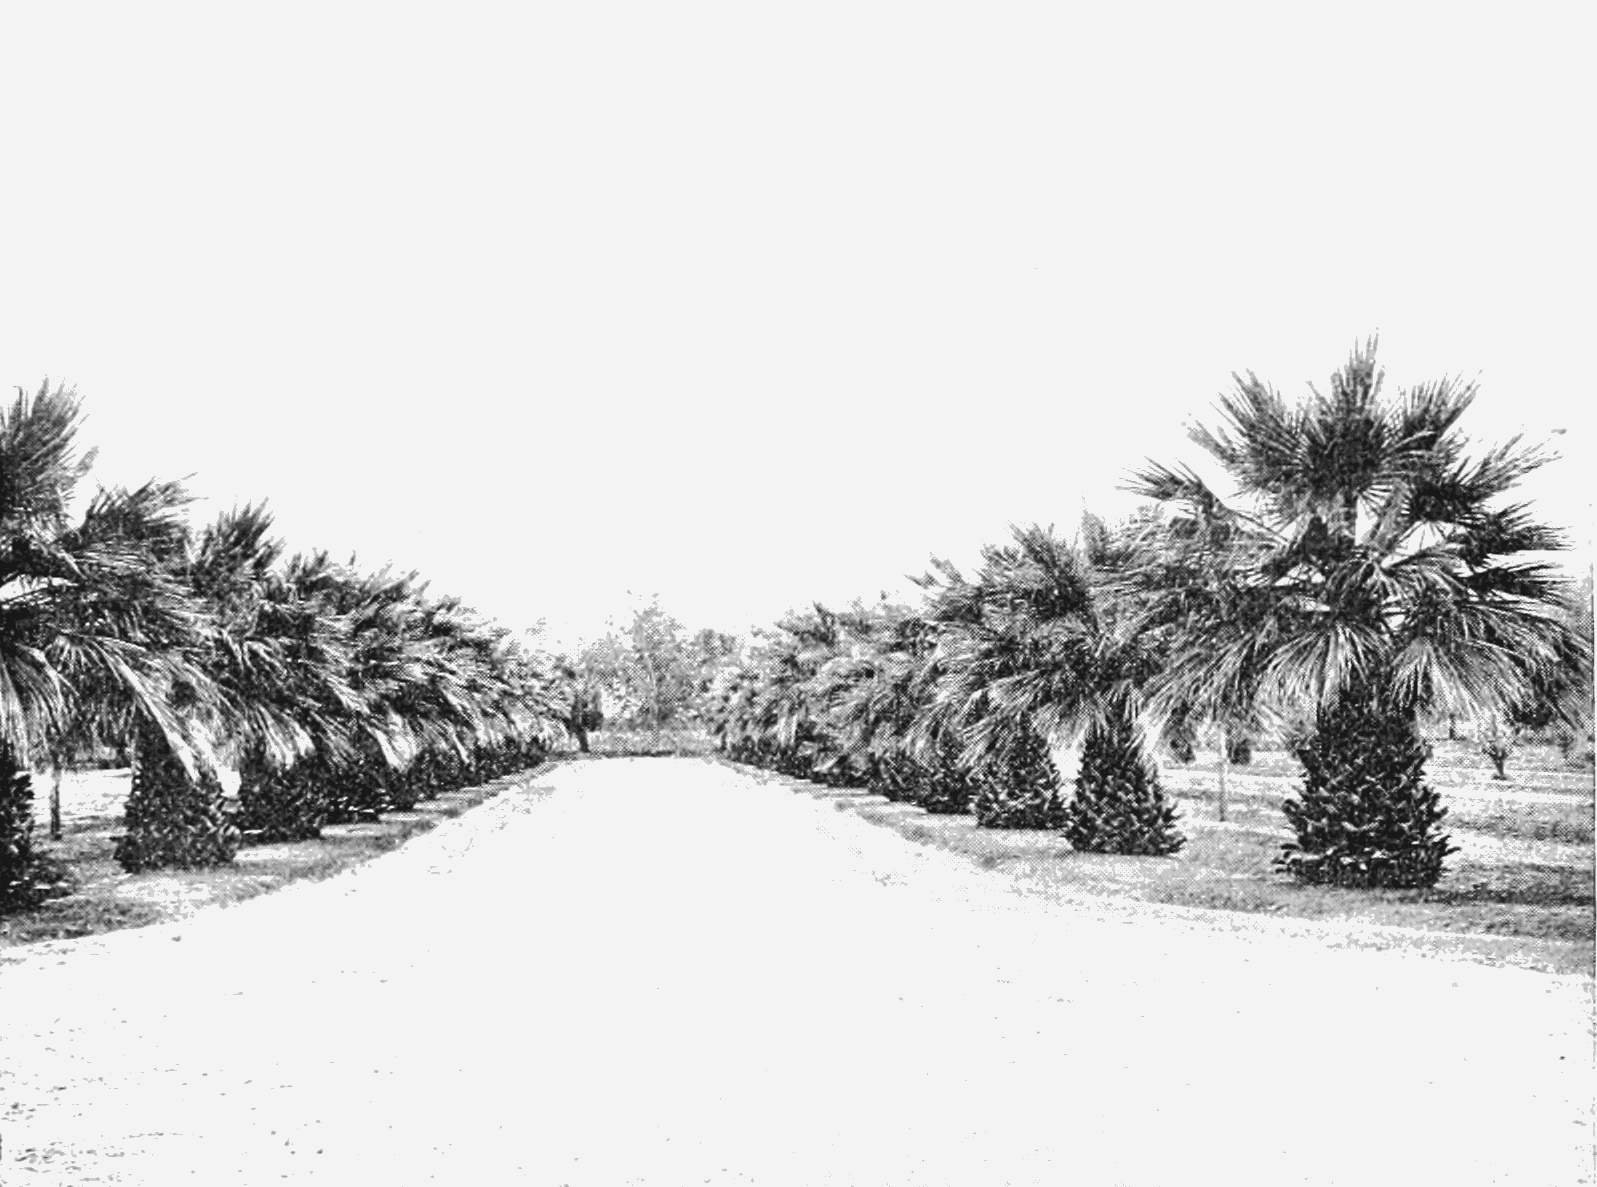 PSM V66 D113 Irrigated palms in phoenix arizona.png